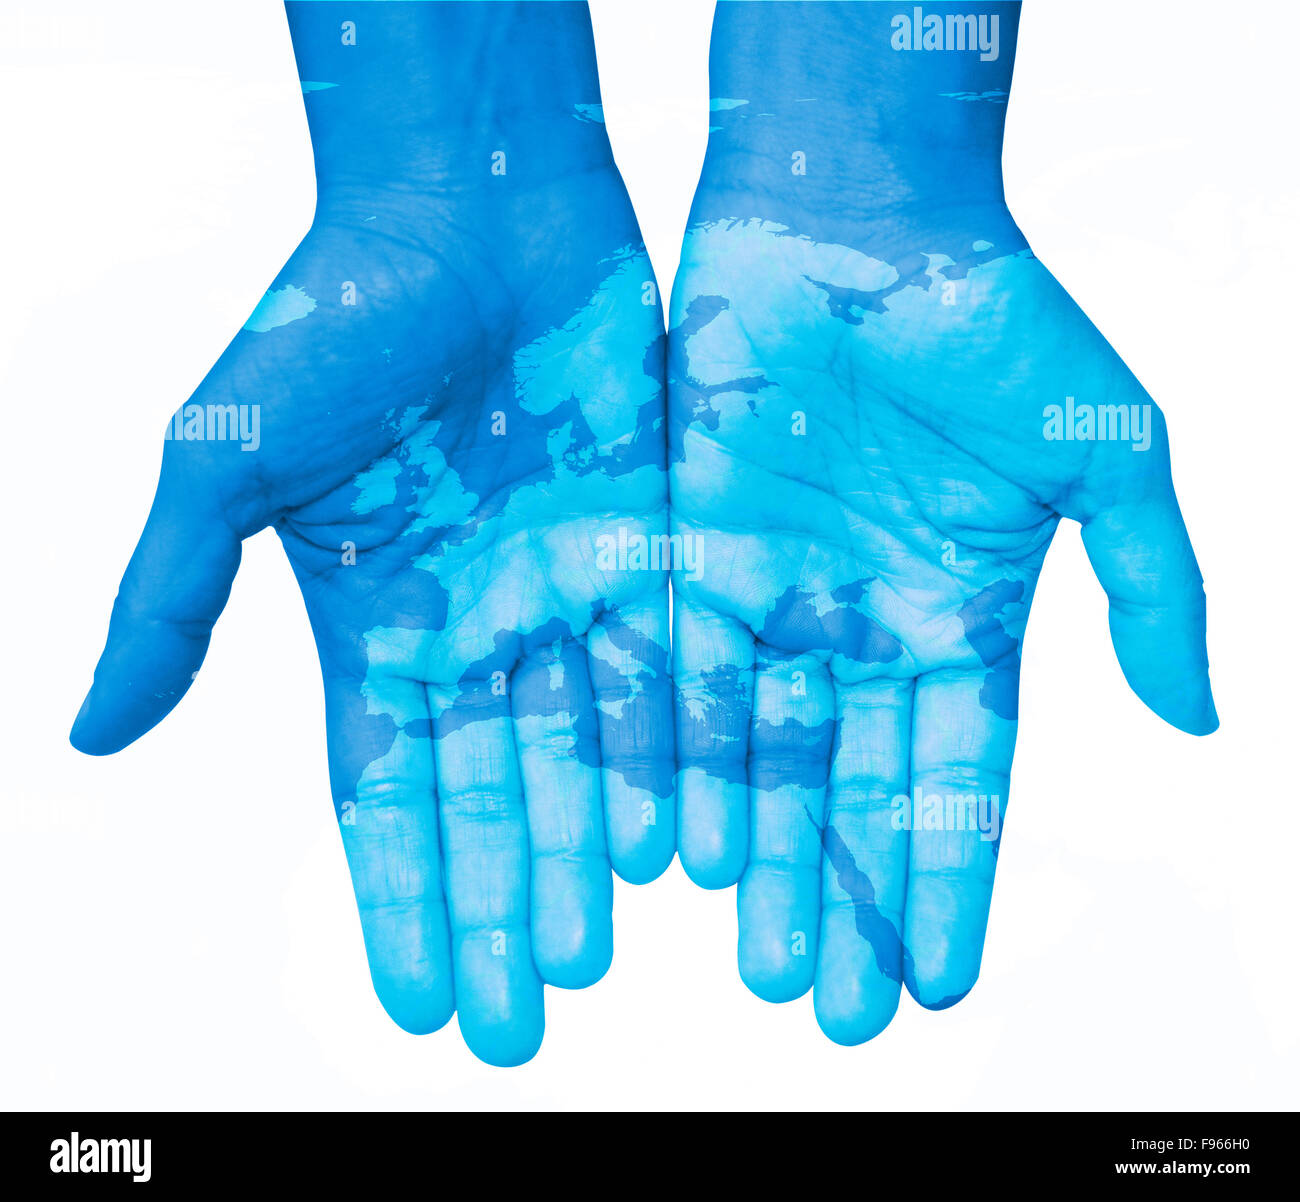 Hands with europe map of europe drawn the world in your hands hands with europe map of europe drawn the world in your hands white background gumiabroncs Images